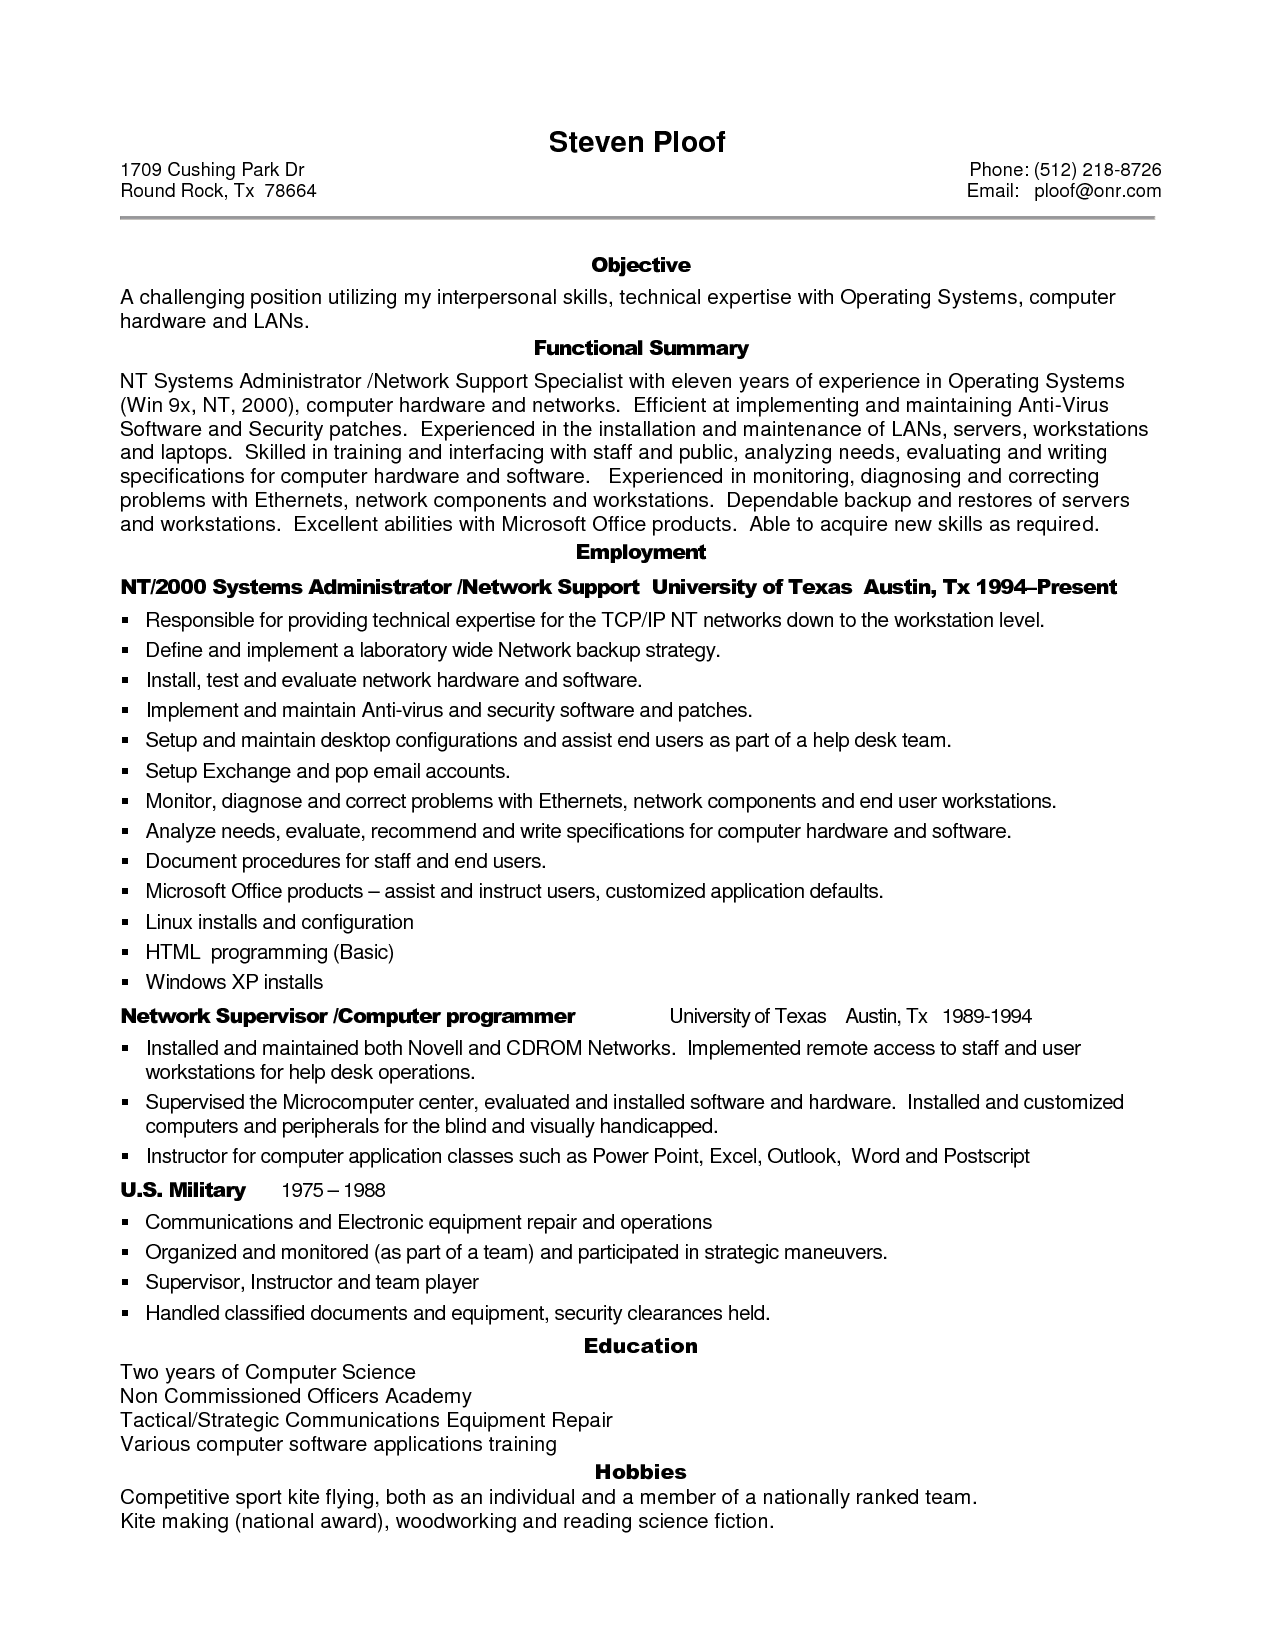 Experience For Resume Examples Sample Resume For Experienced It Professional Sample